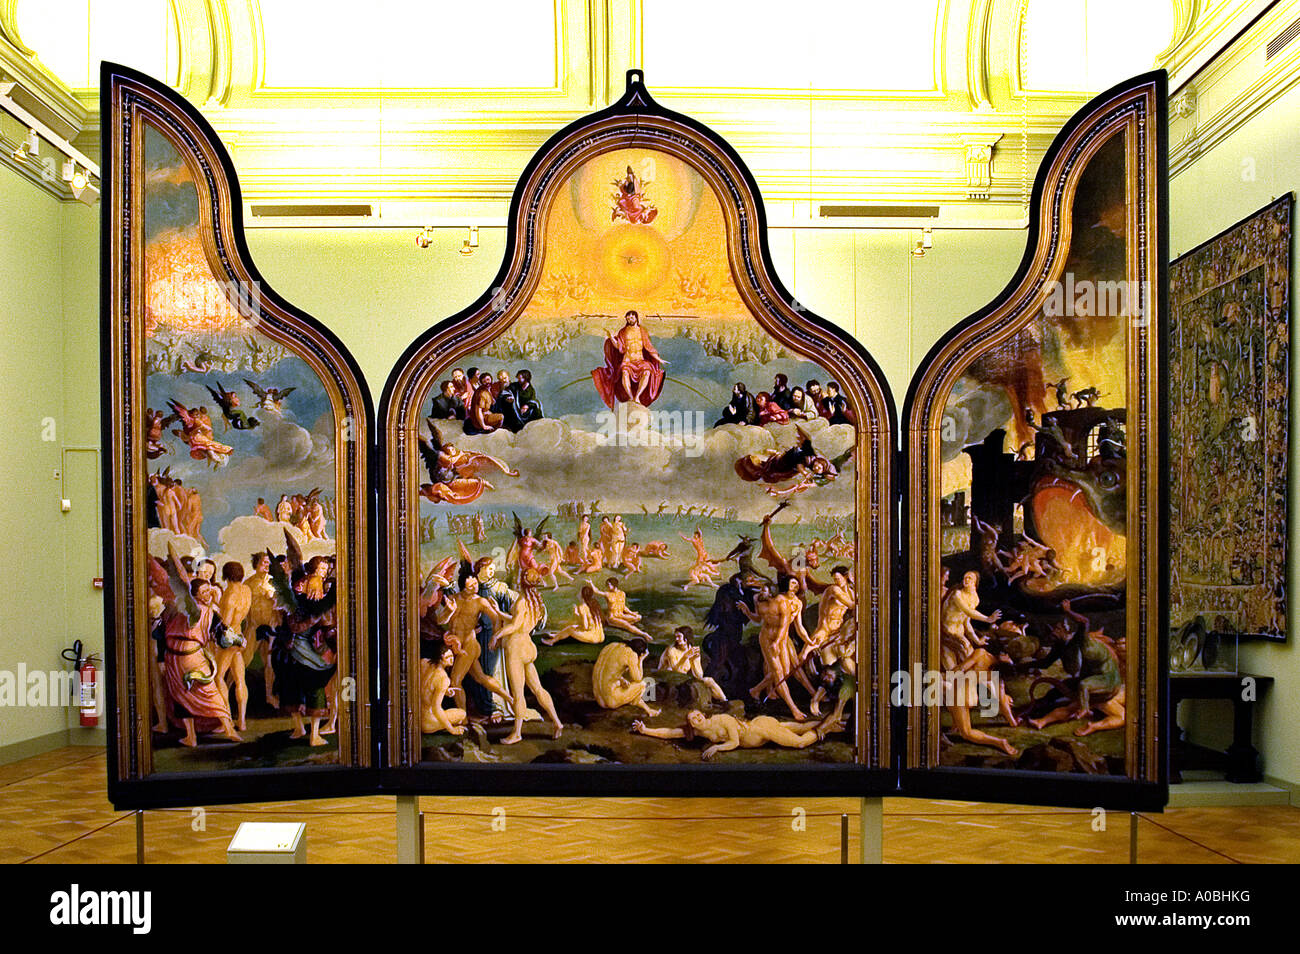 Lucas Van Leyden The Last Judgement By Lucas Van Leyden Leiden 1494 1533